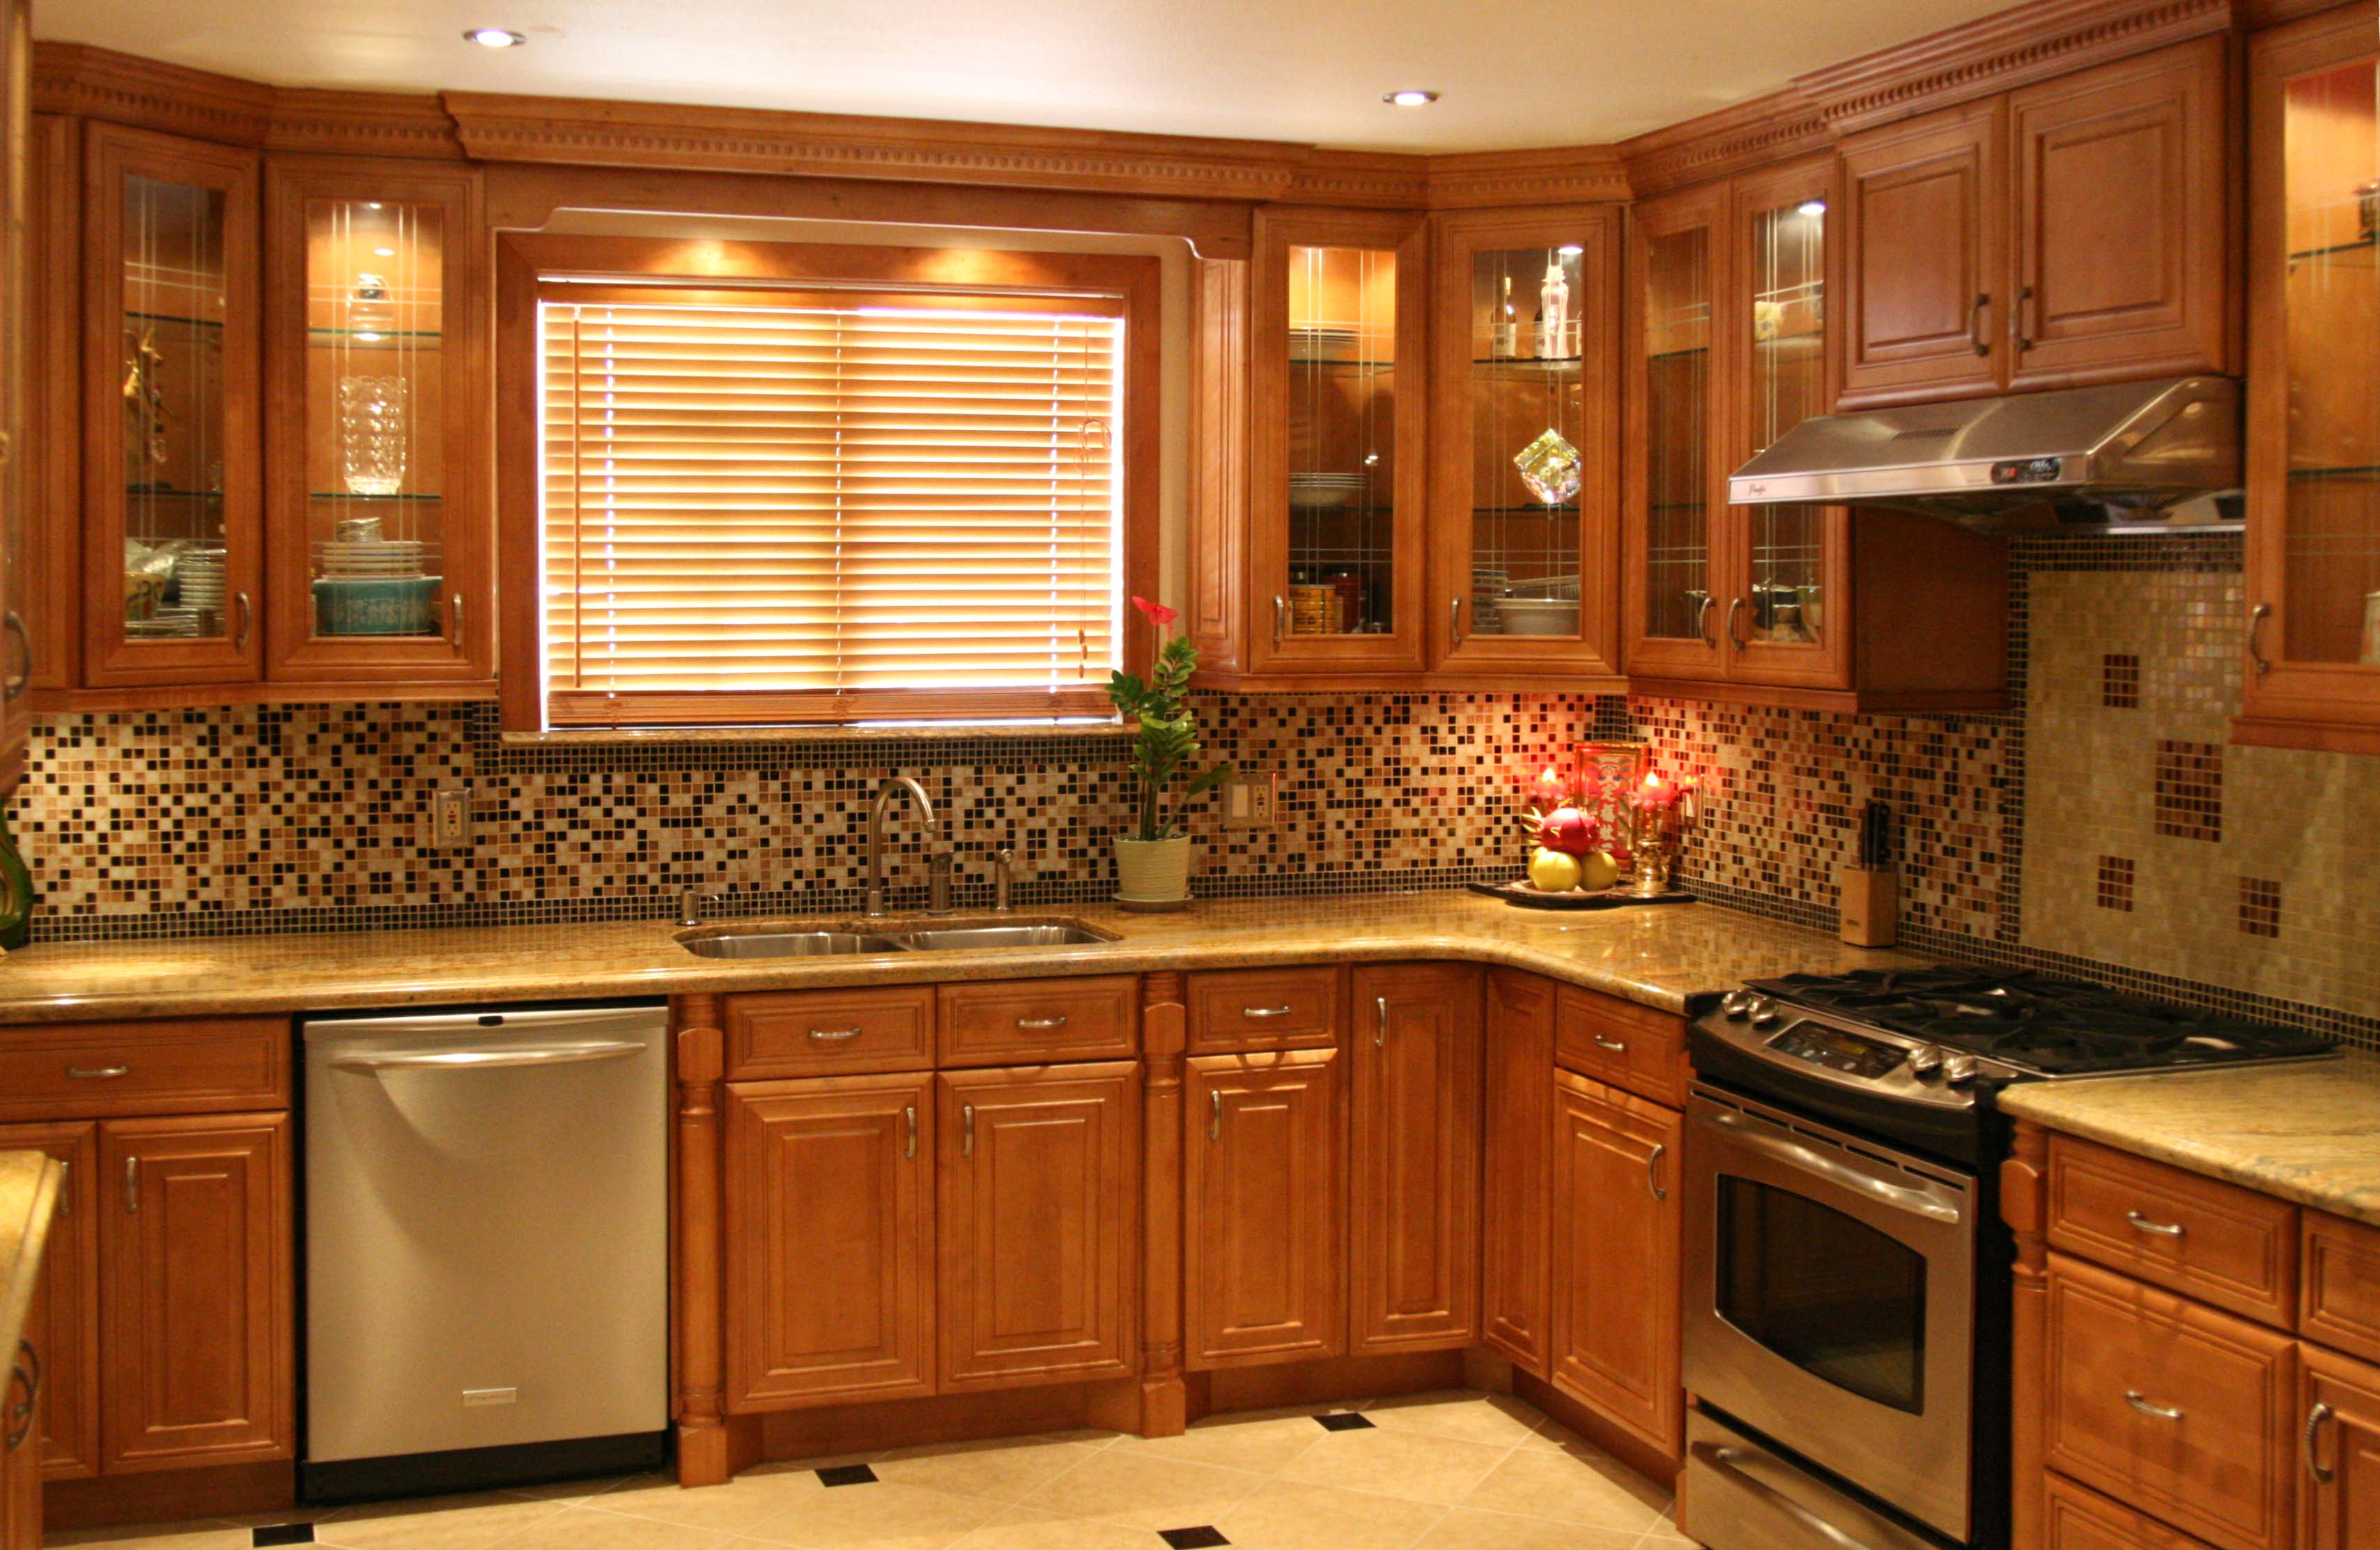 Kitchen image kitchen bathroom design center for Maple kitchen cabinets